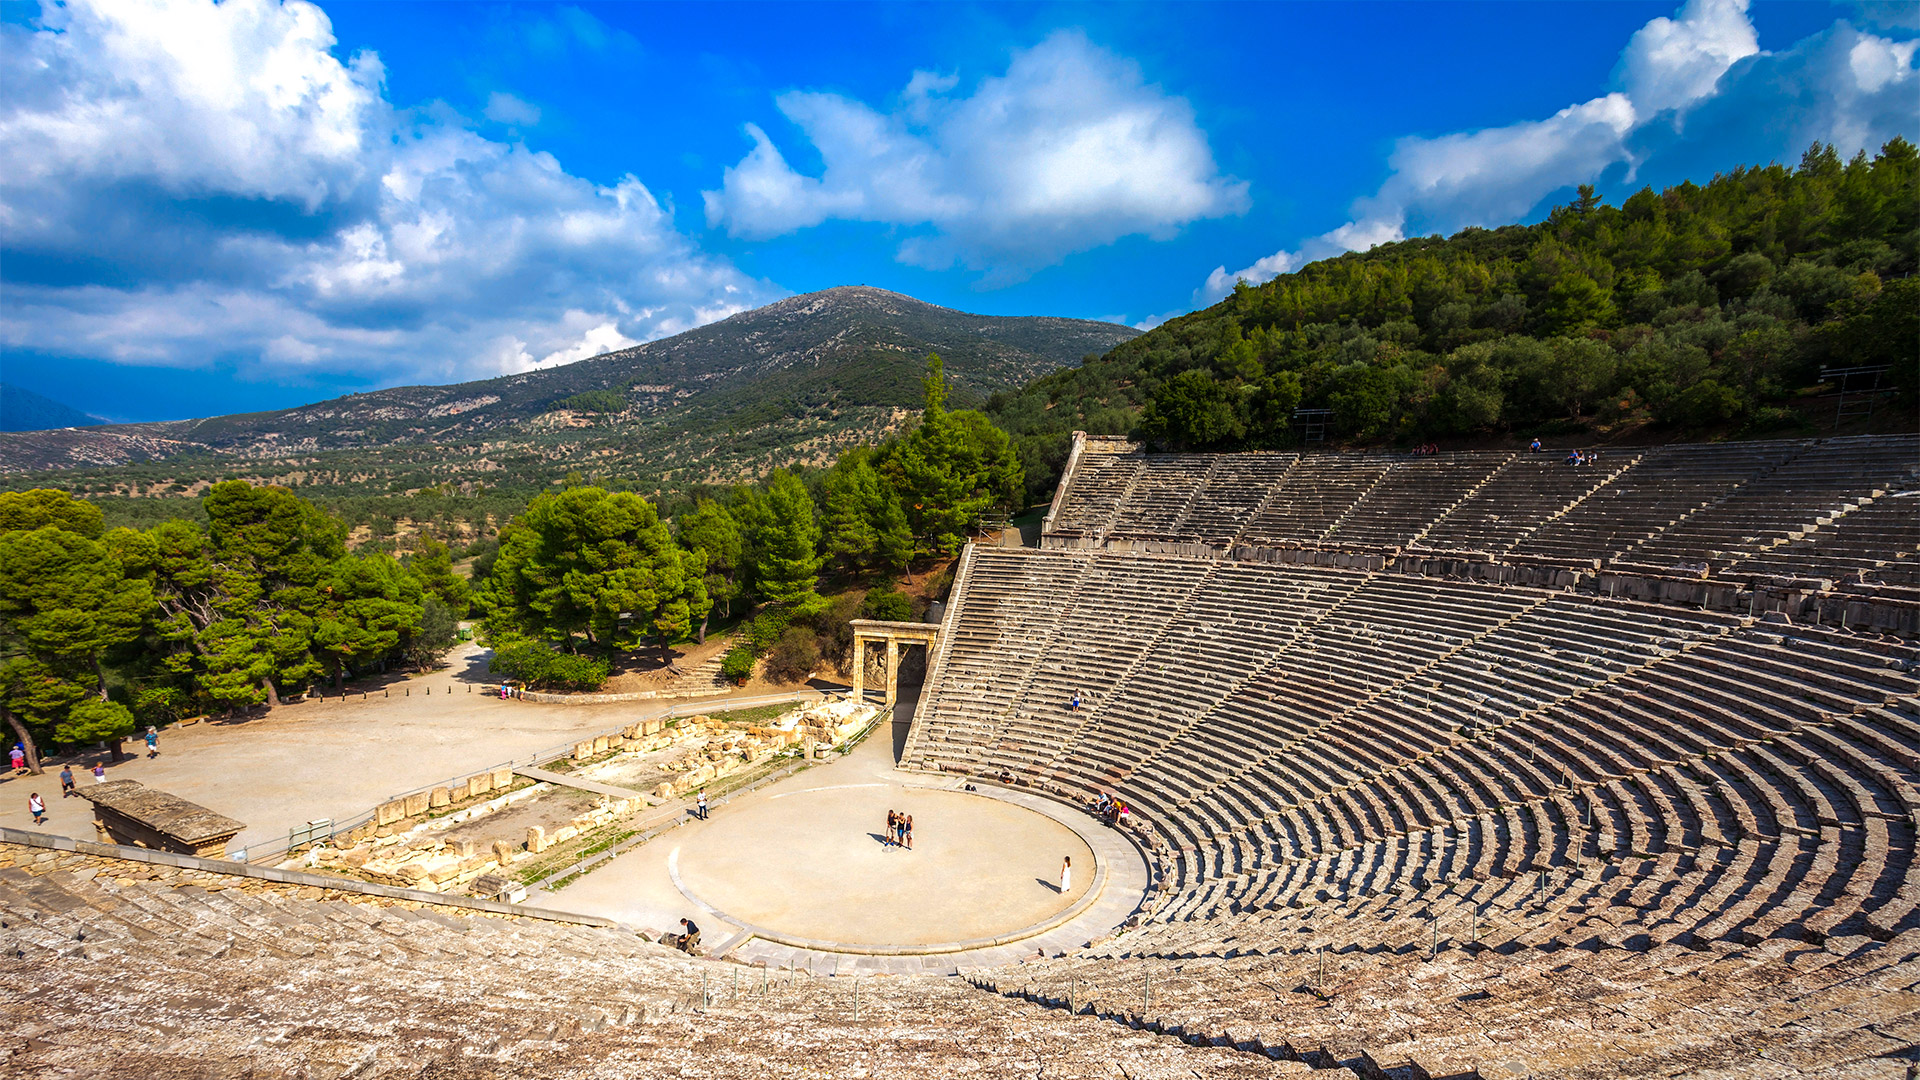 The Epidaurus Ancient Theater built on the Cynortion Mountains